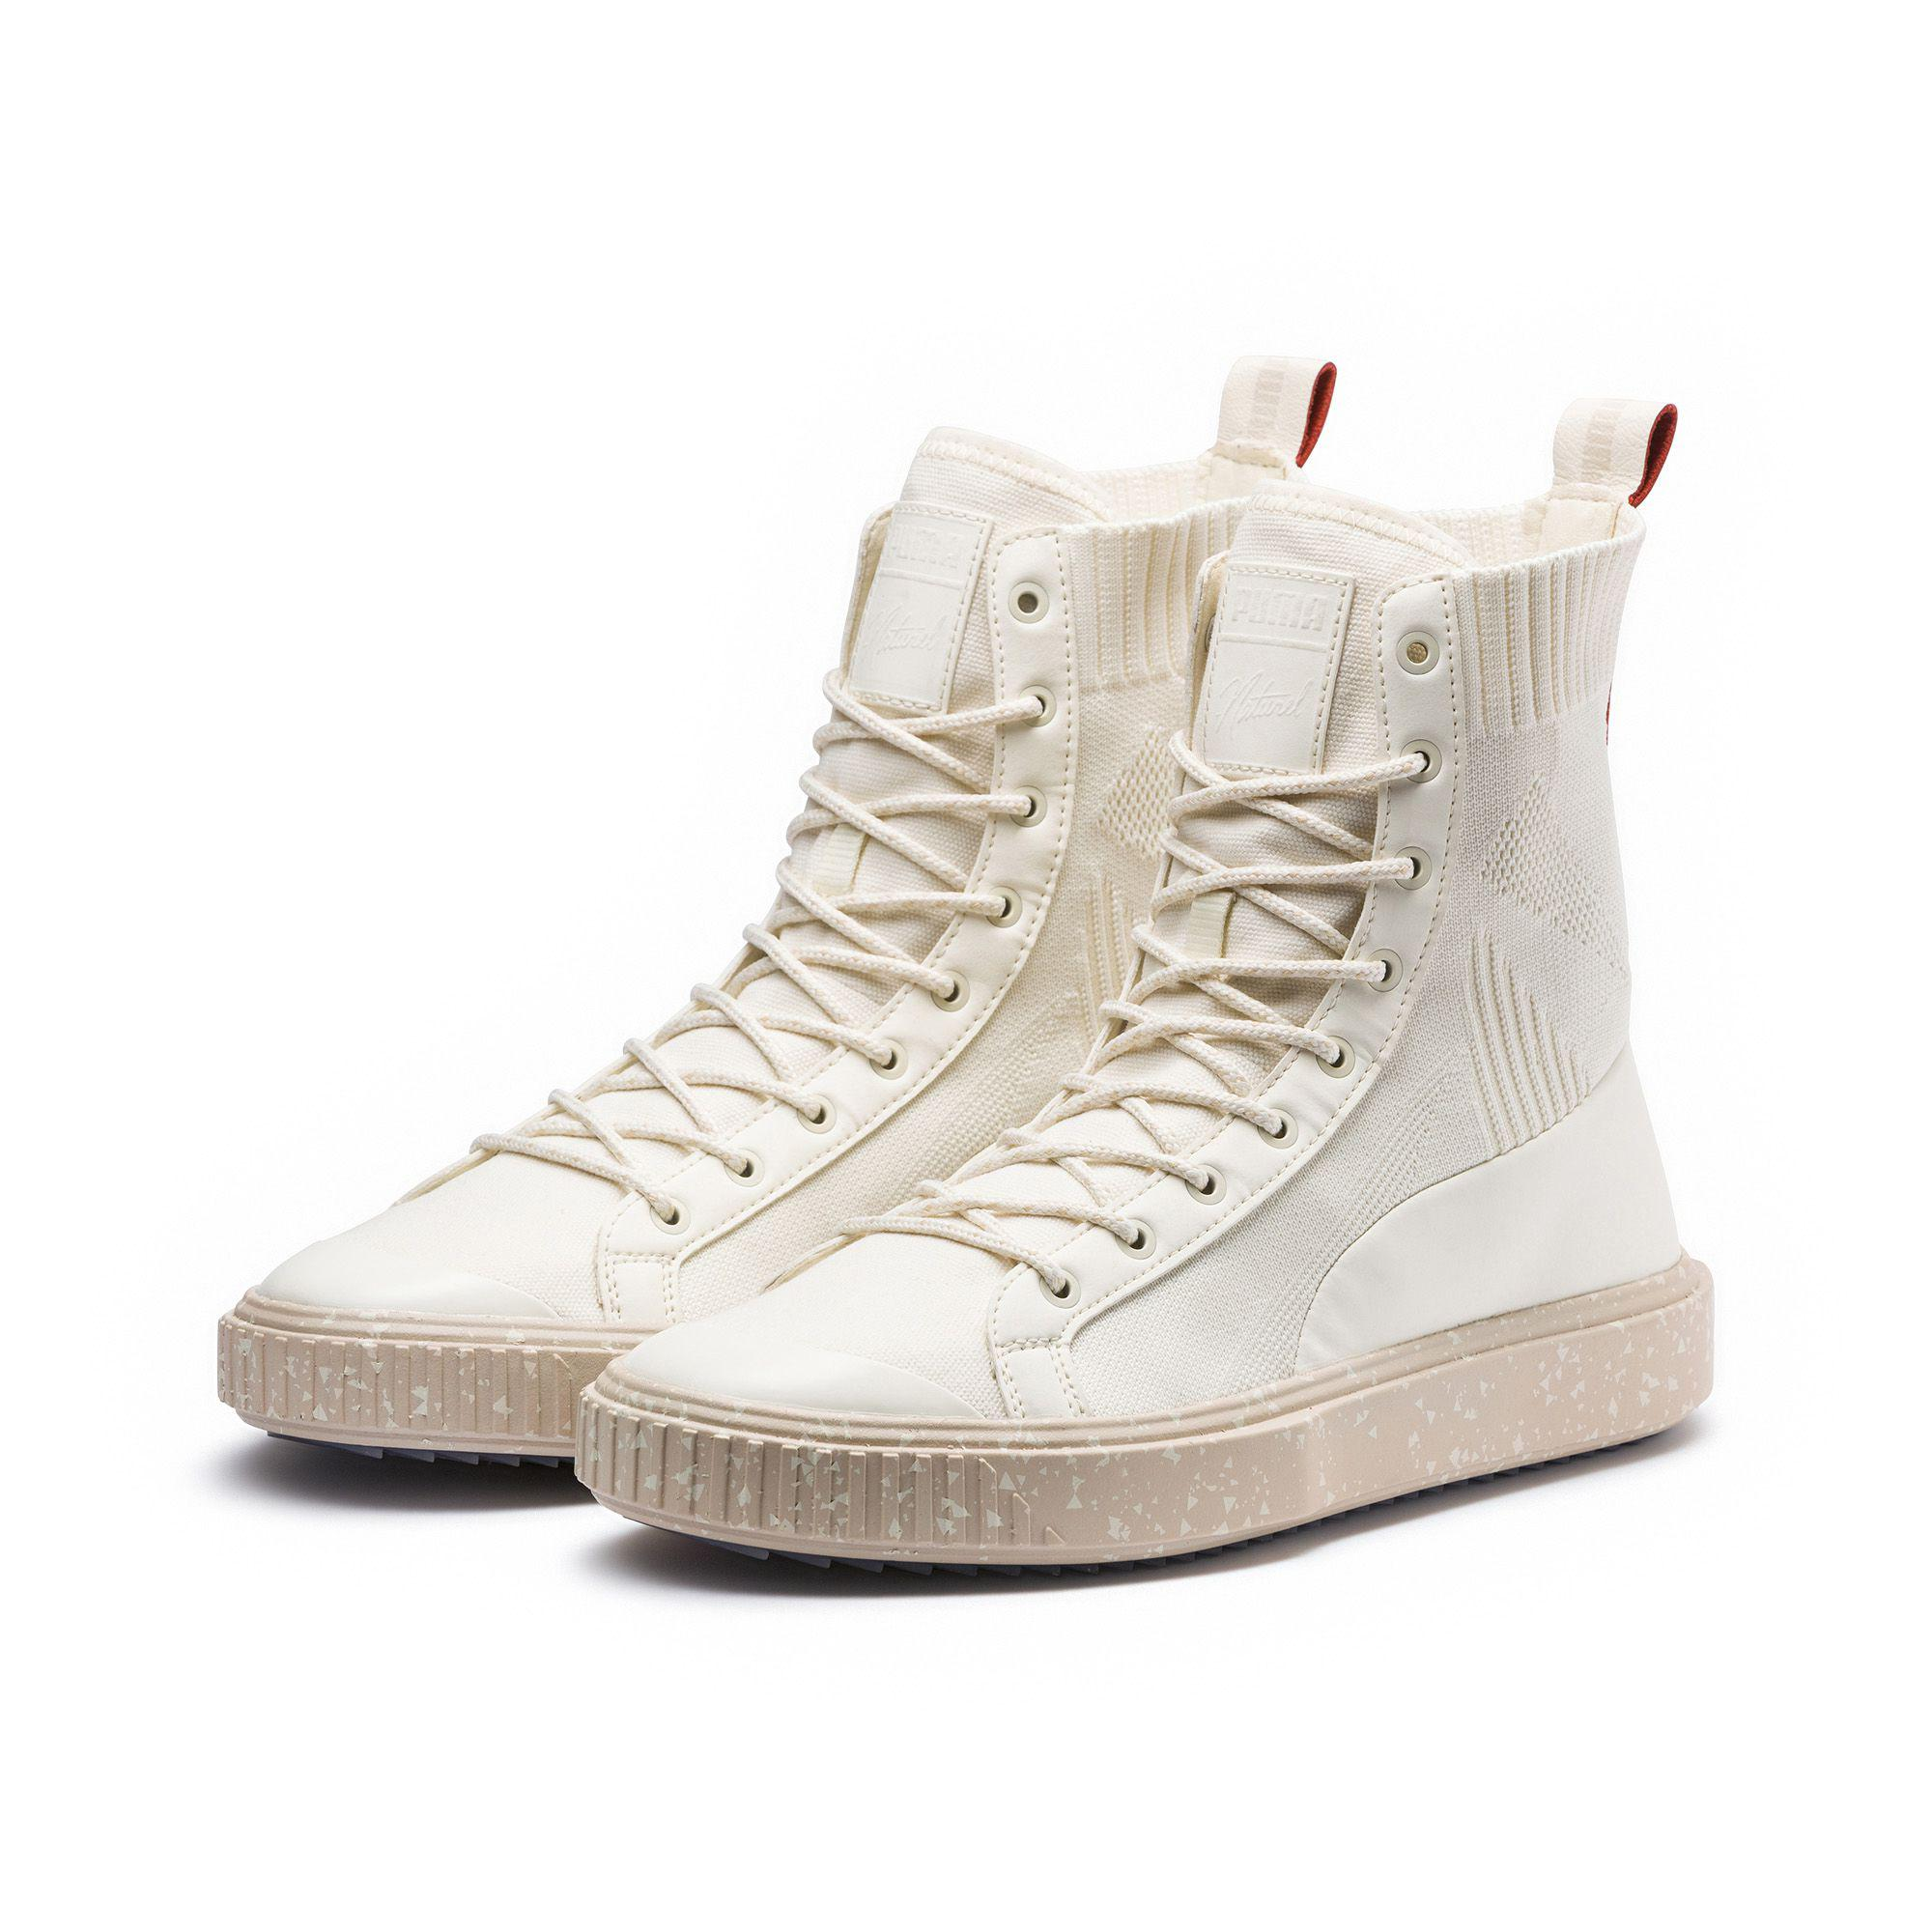 Lyst - PUMA X Naturel Breaker Boot Sneakers in White 1fecae6ff